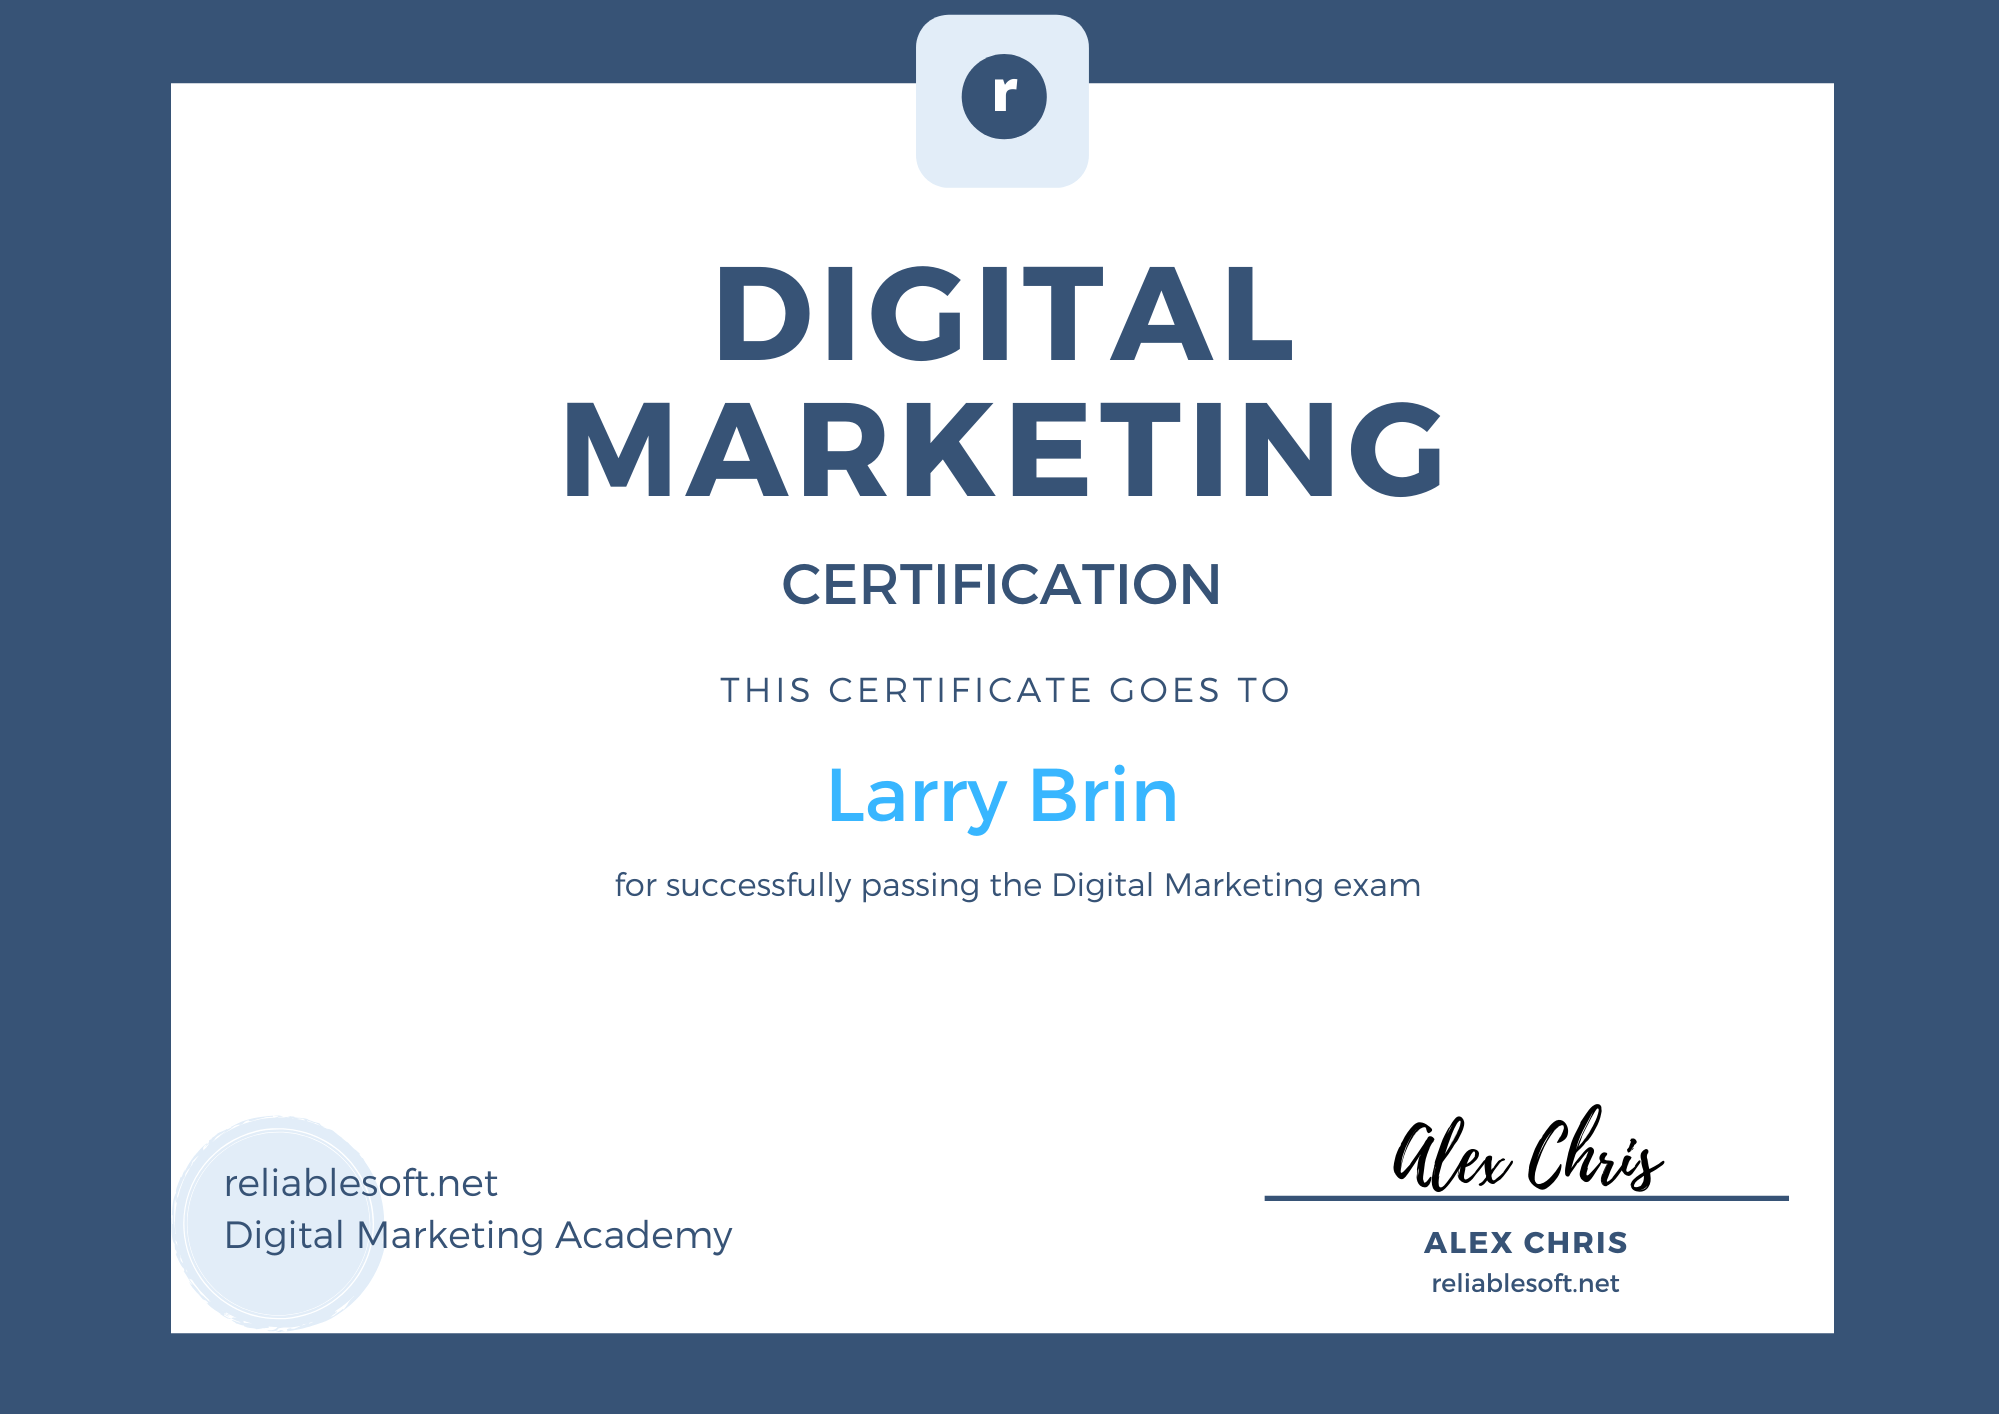 Certificado de marketing digital